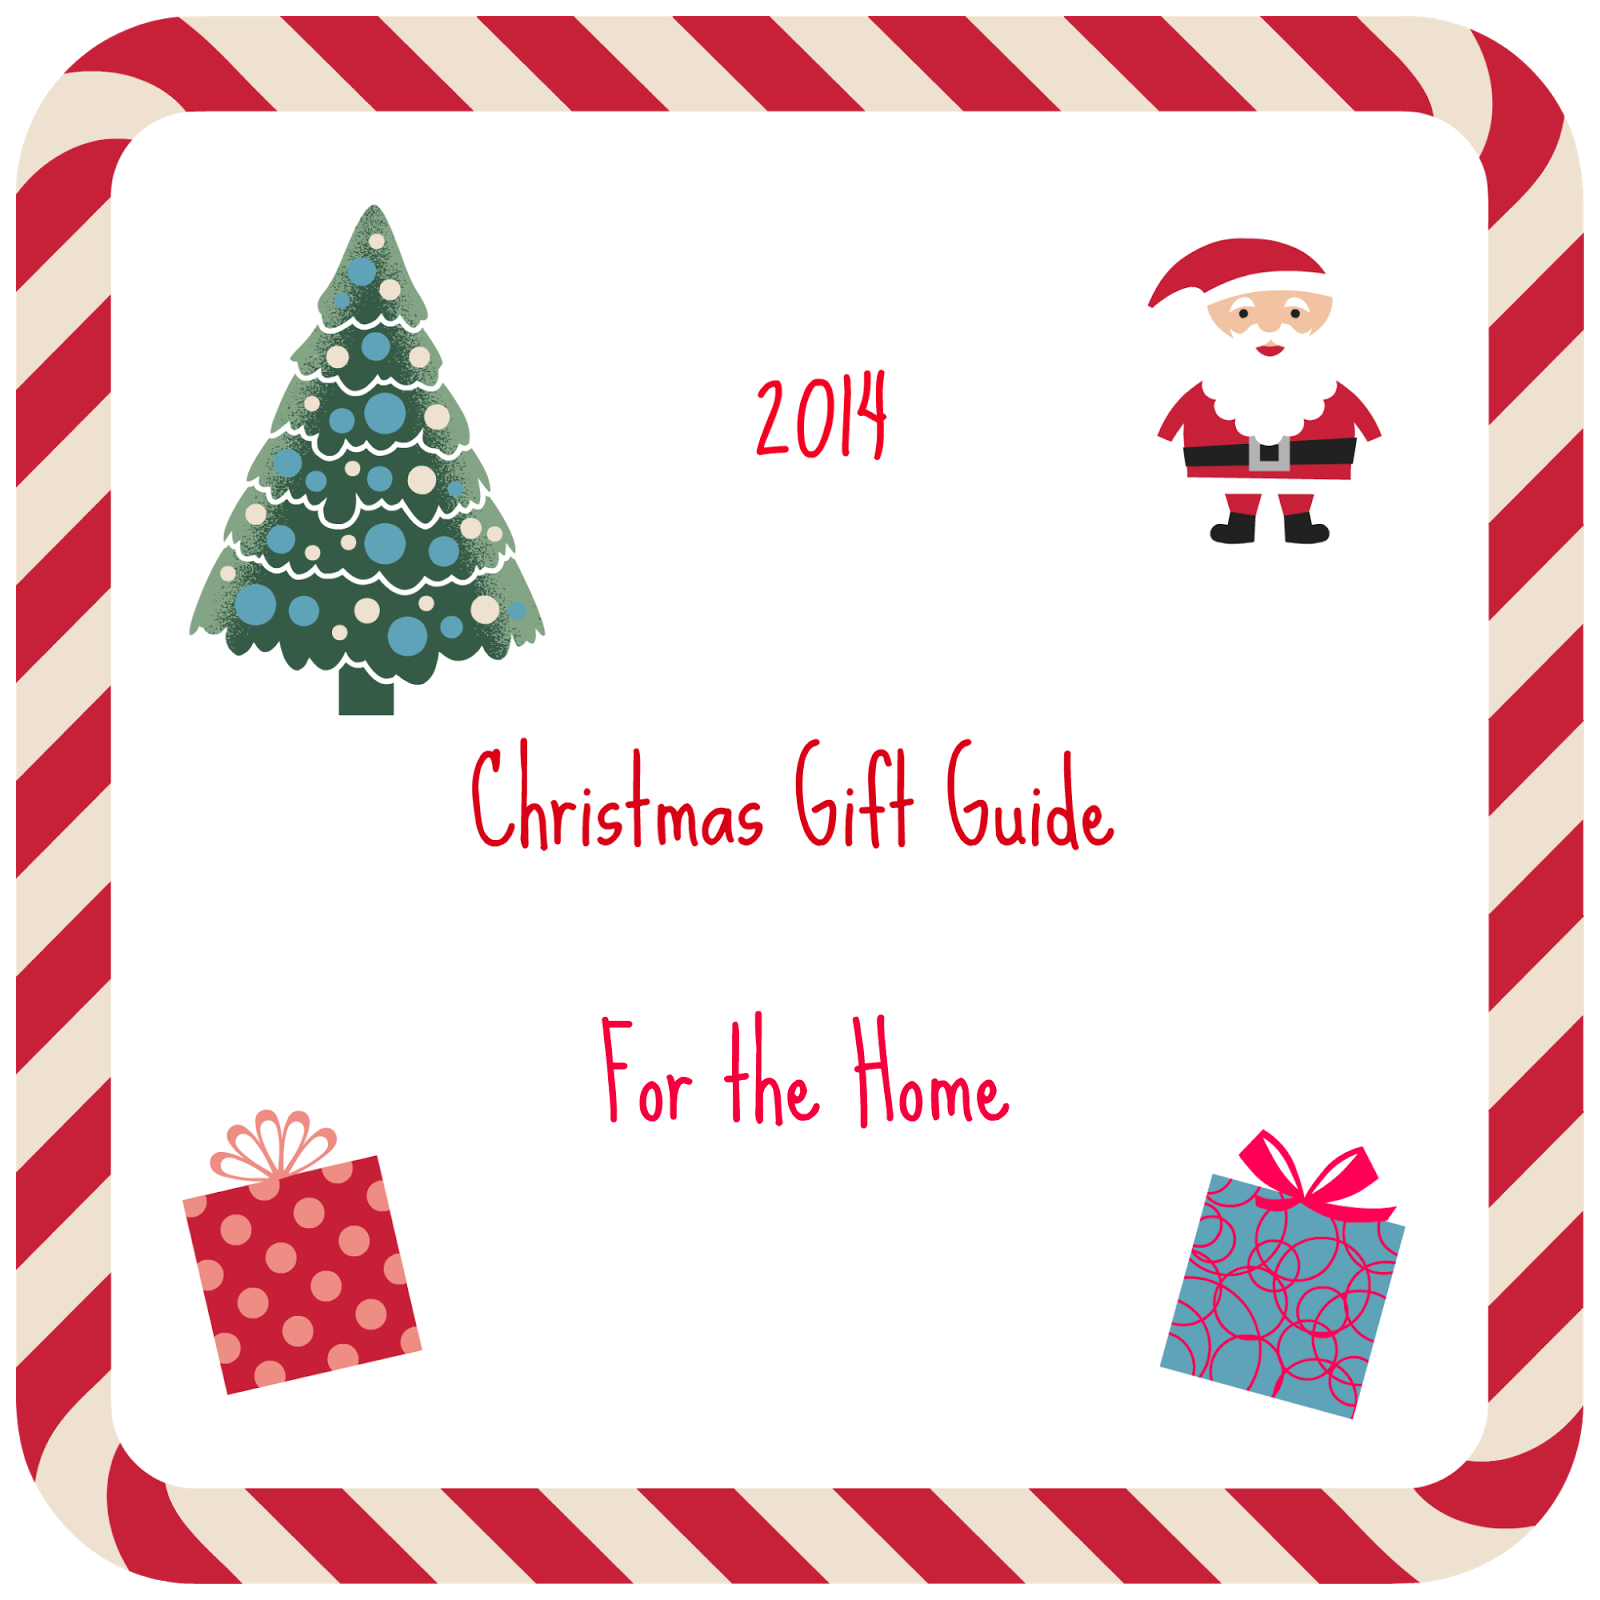 Christmas gifts for around the home